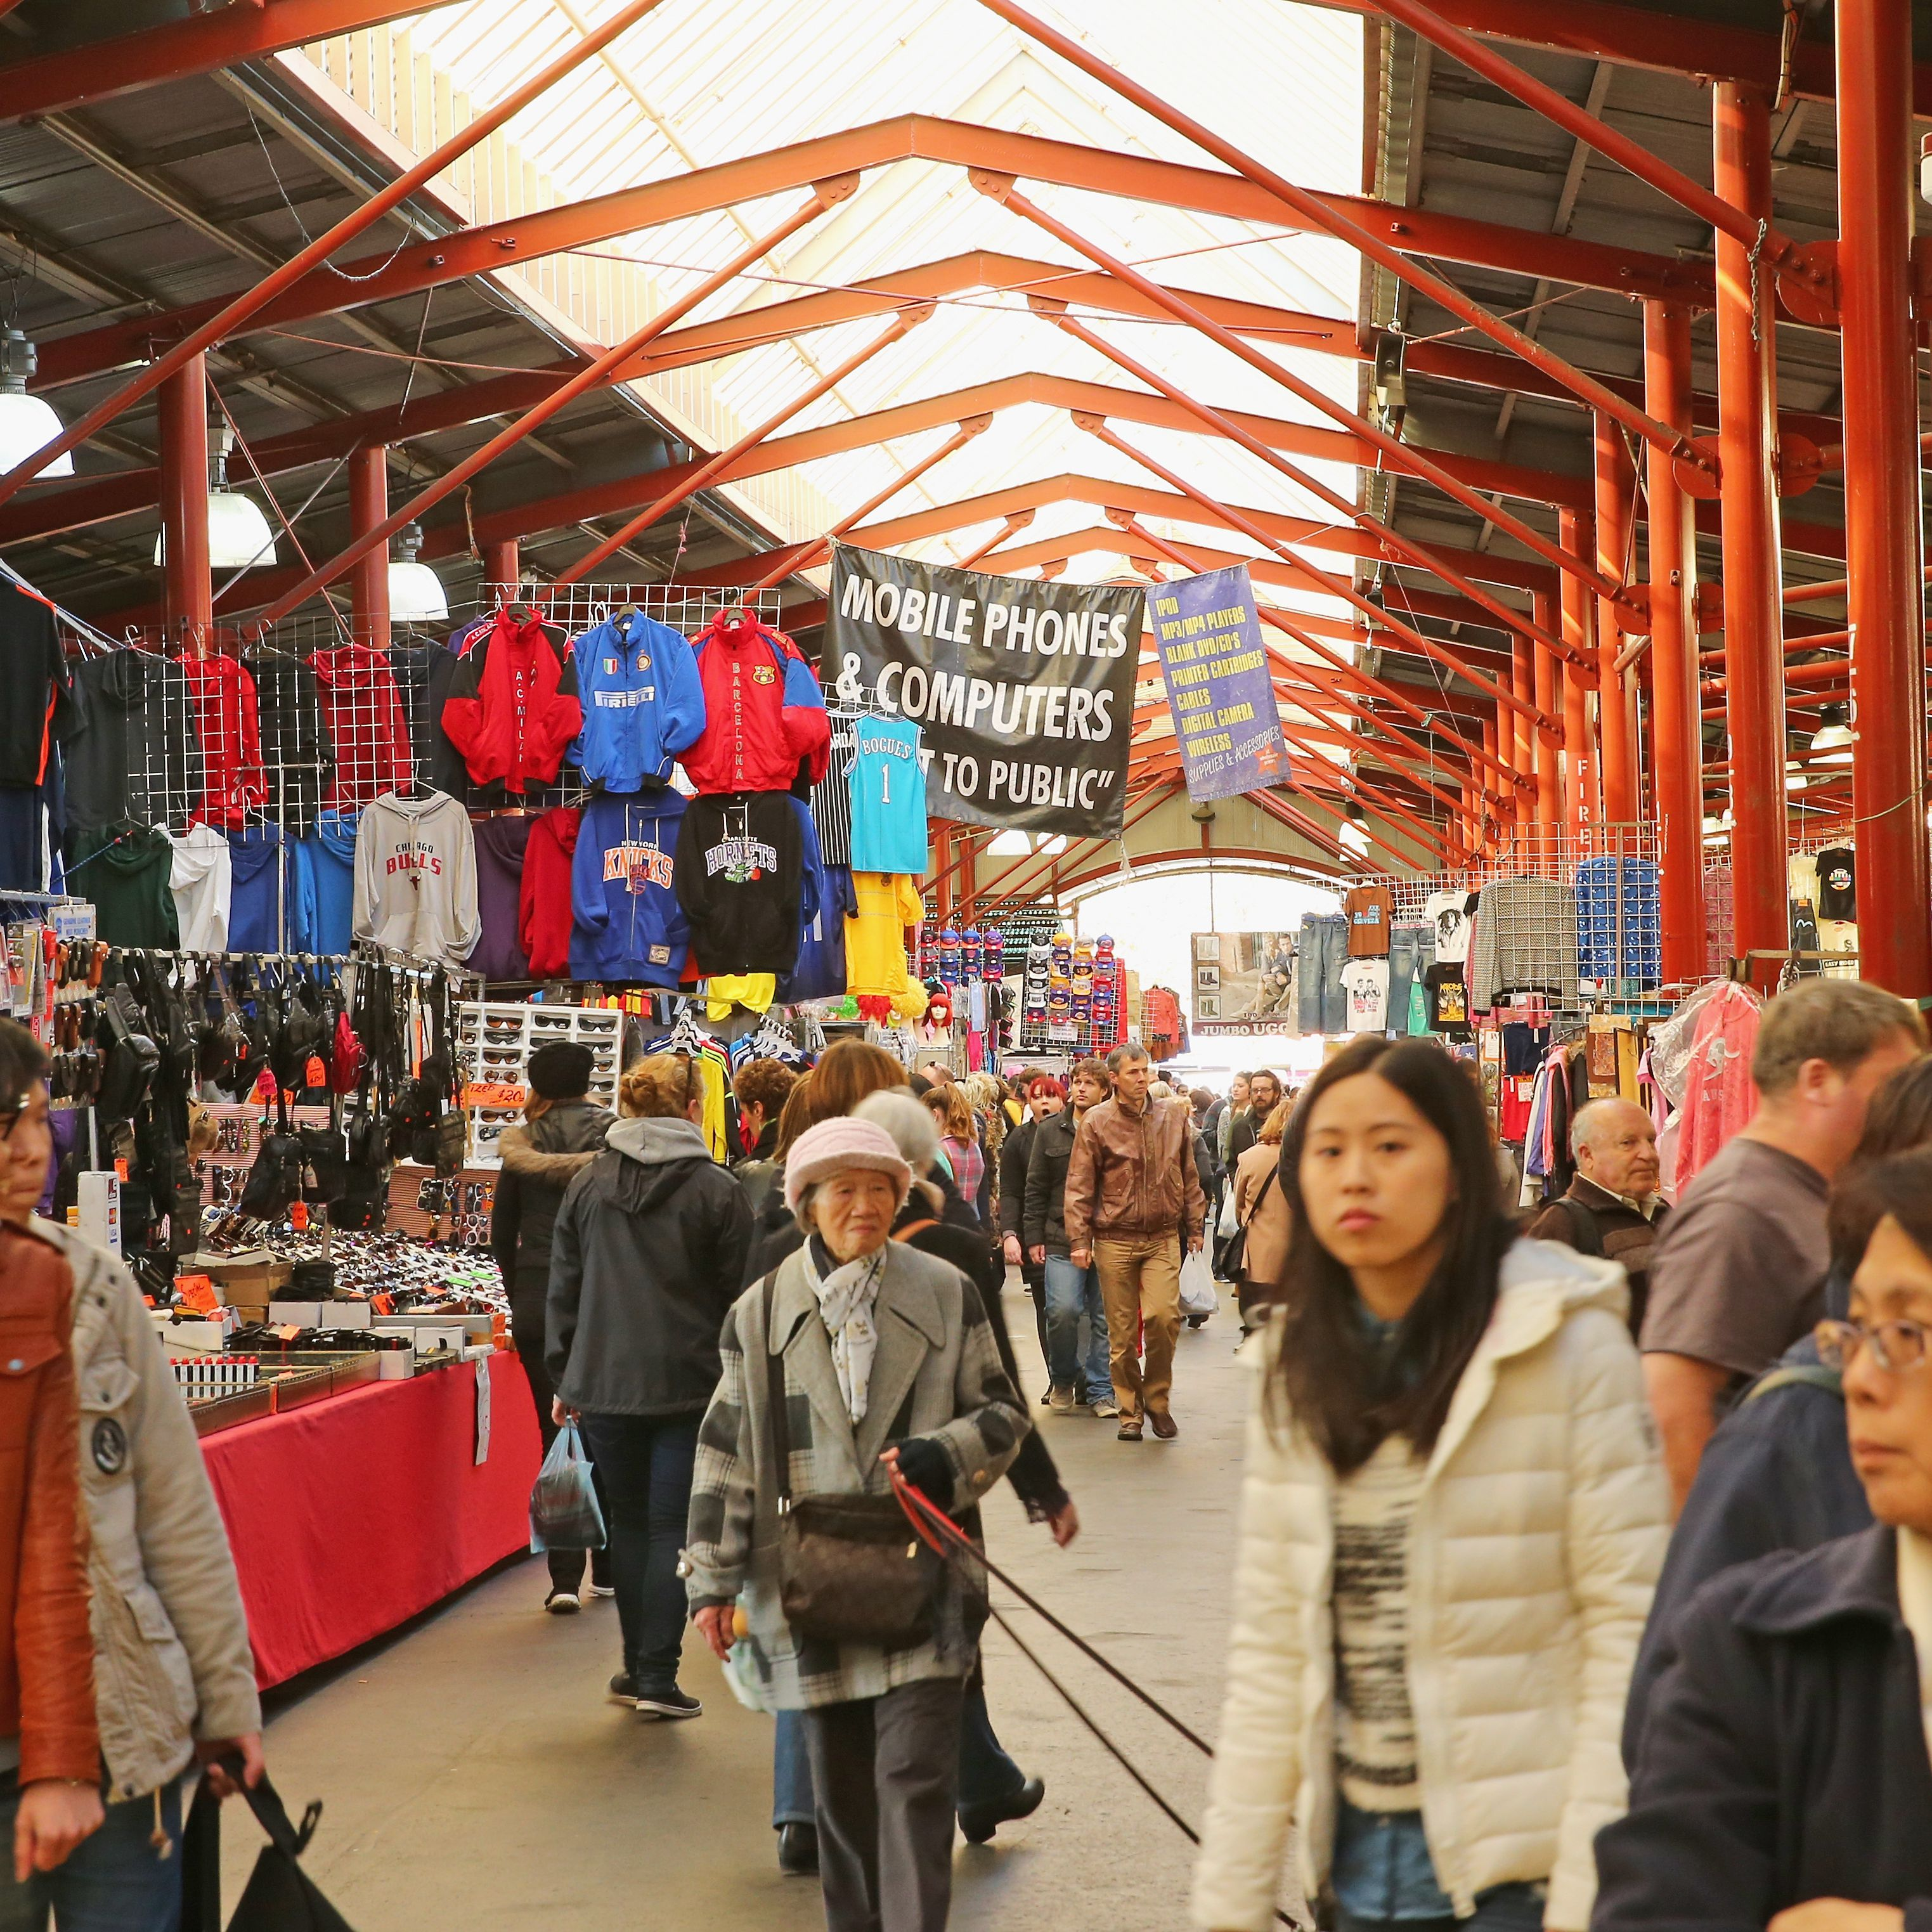 The Top 8 Markets in Melbourne